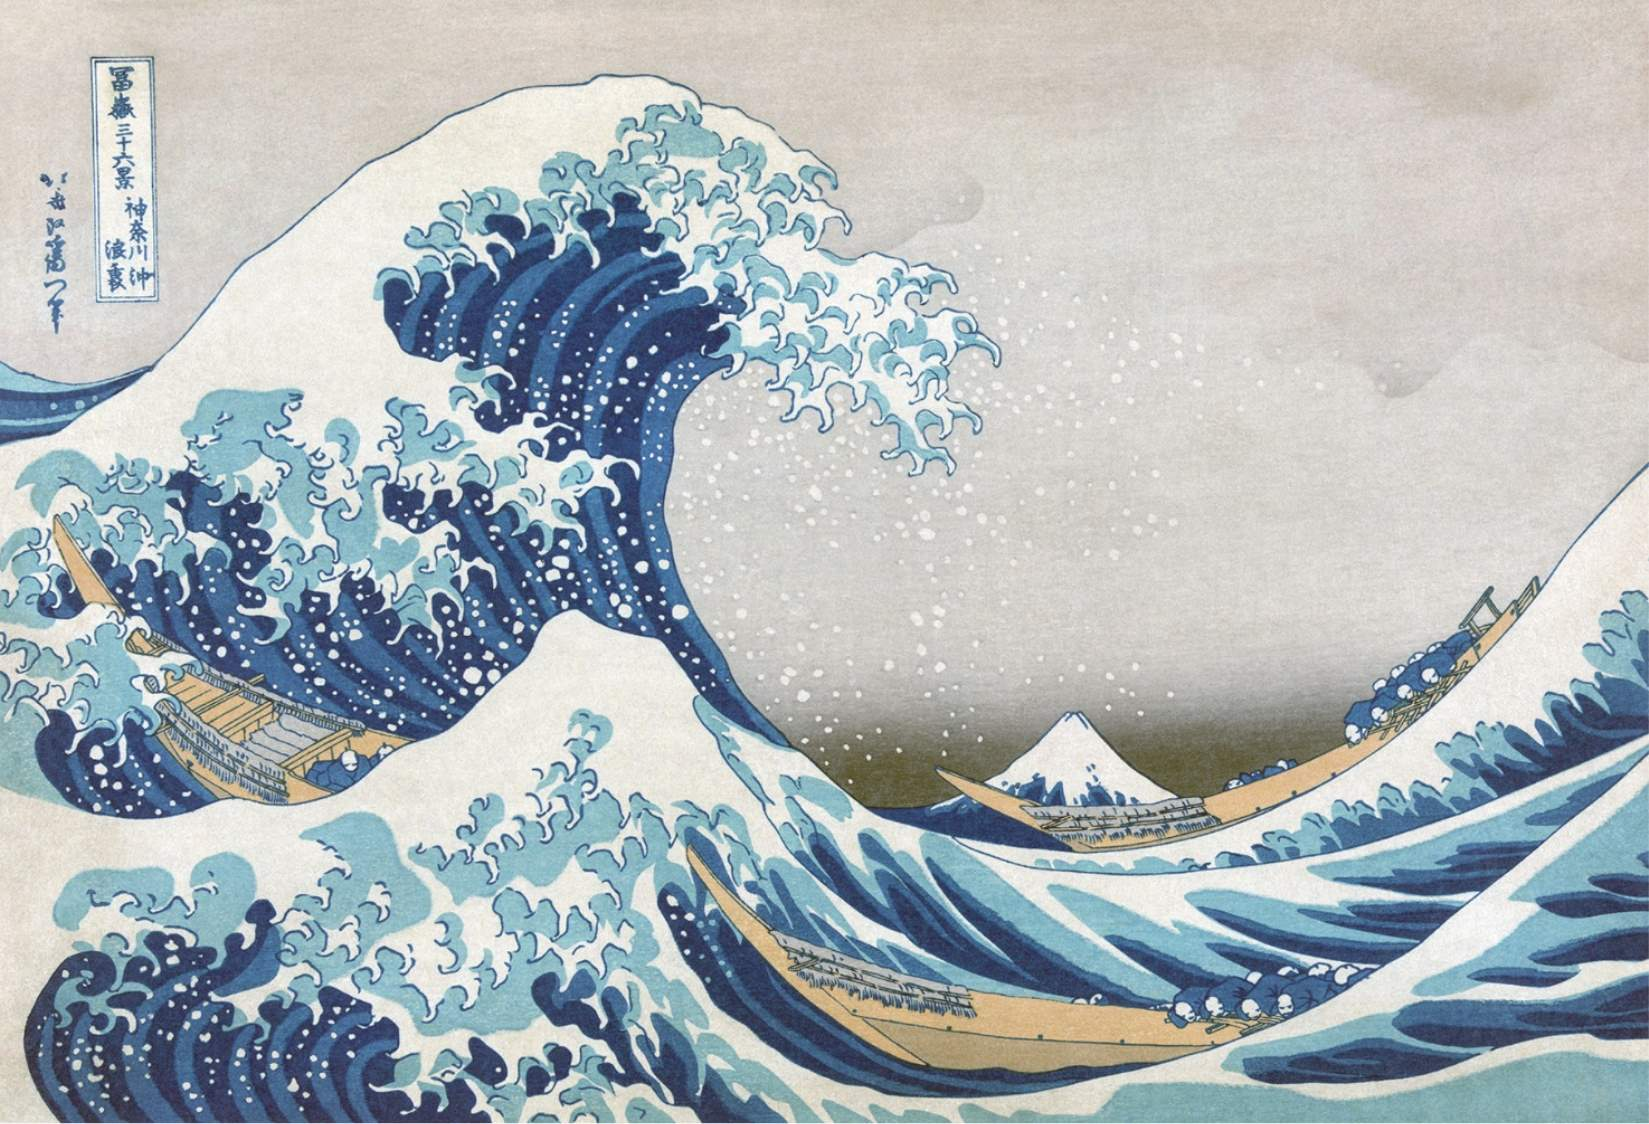 http://payload212.cargocollective.com/1/13/438296/6544239/Great_Wave_off_Kanagawa2_o_o.jpg